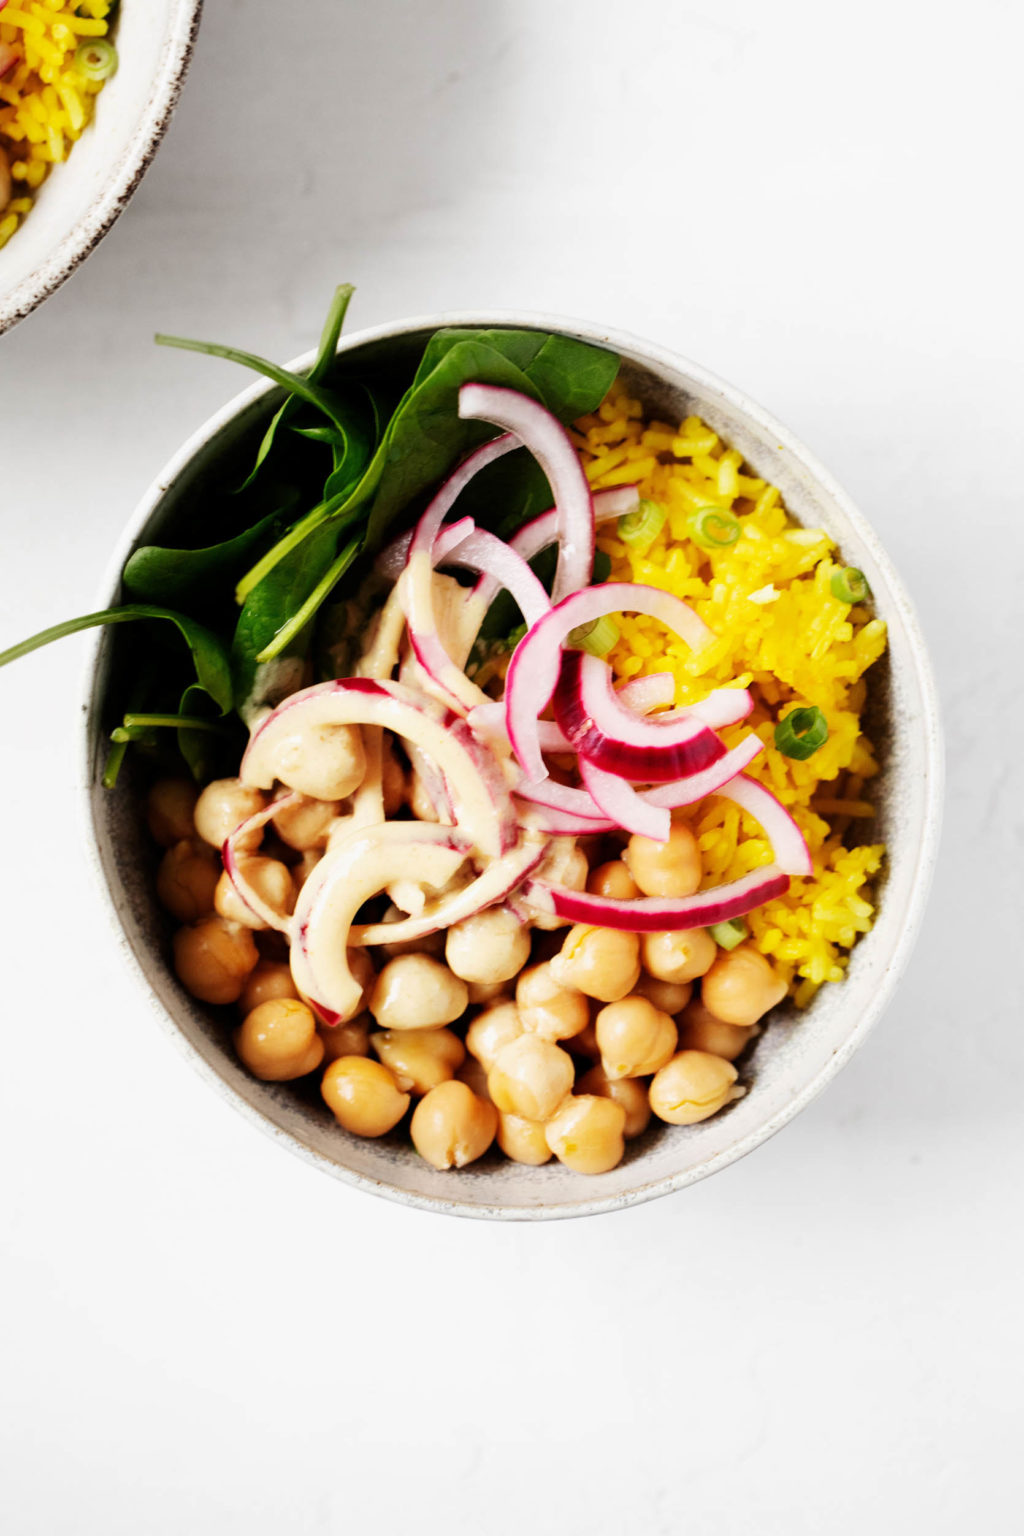 Turmeric rice bowls have been created with chickpeas, turmeric spiced rice, pickled onions, and greens. They're served in two white bowls.